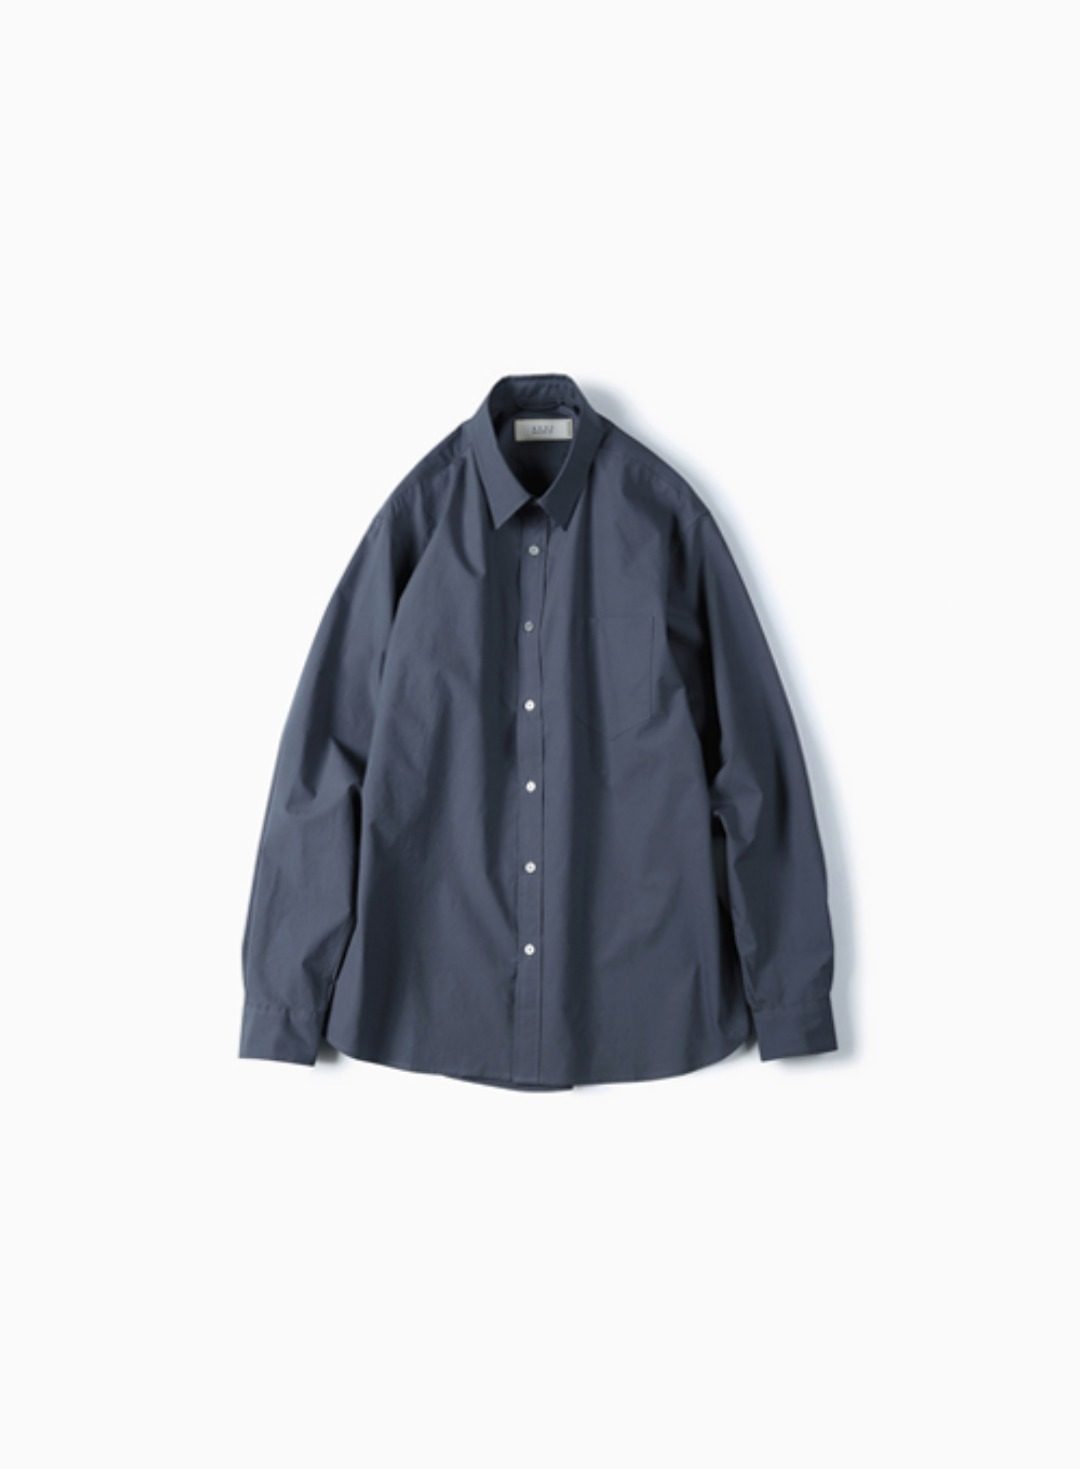 03 STANDARD SHIRT (LIGHT NAVY)